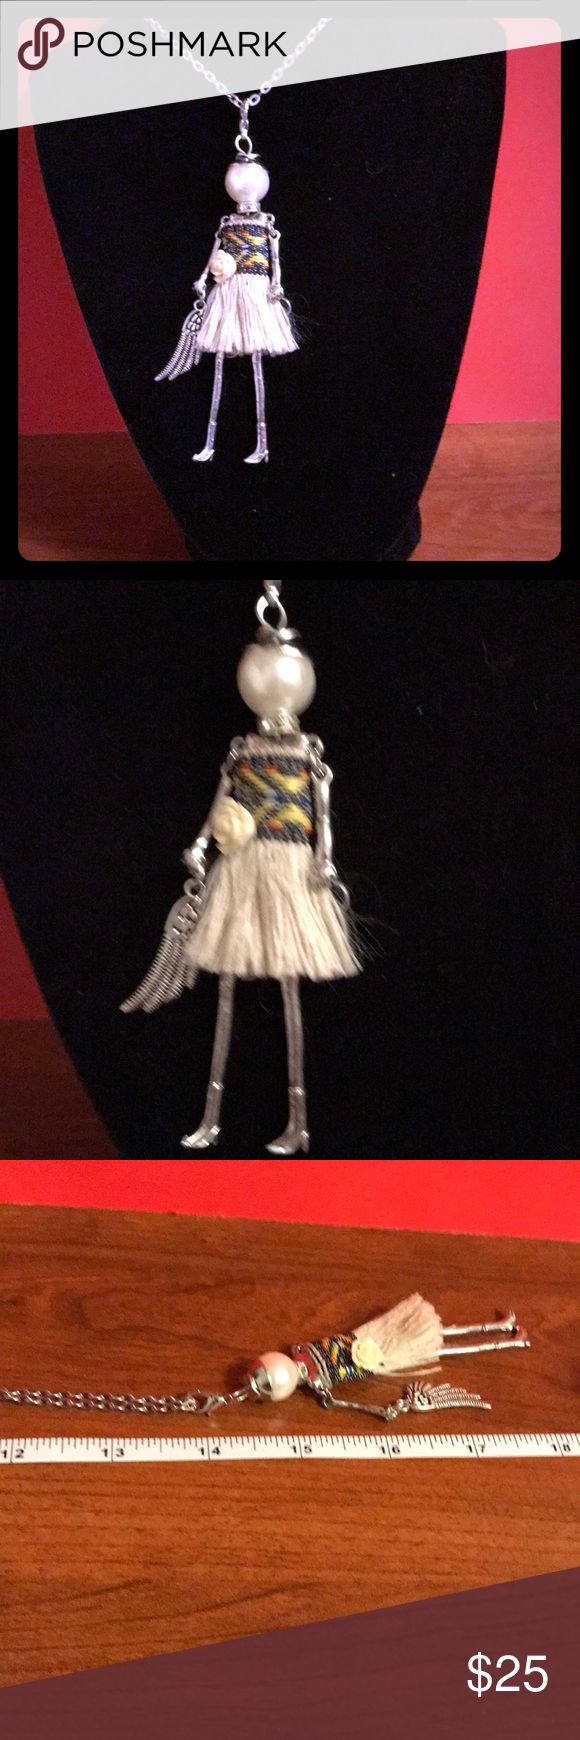 UNIQUE IZZY DOLL NECKLACE Our unique Izzy doll necklace is on a silver 13 inch chain, silver legs and arms silver angel wing.Pearlized face, beige skirt and flowe. Wonderful for yourself or a wonderful present for a loved one. IZZY is our Favorite doll necklace..She is brand new. Lucy & Ethel Jewelry Necklaces